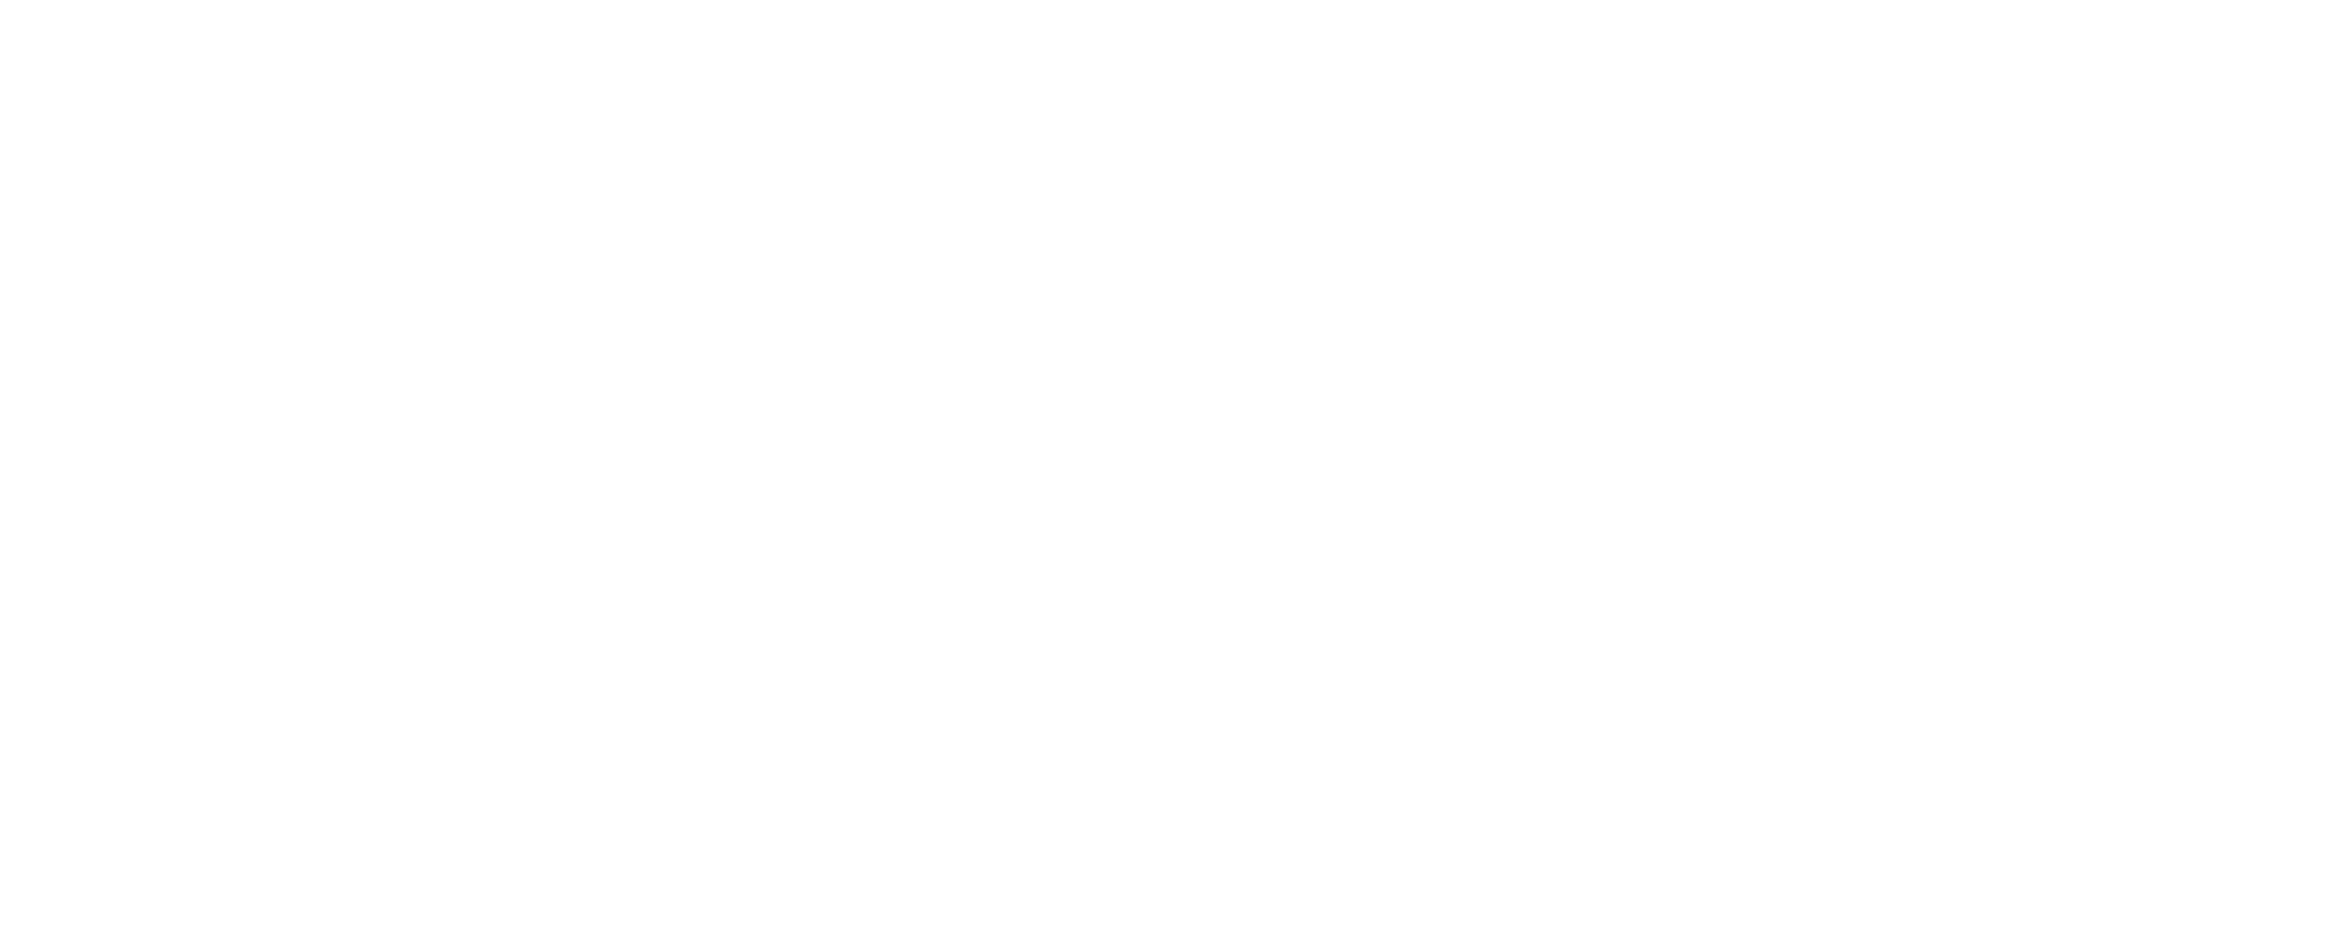 Temple Academy of Performing Arts